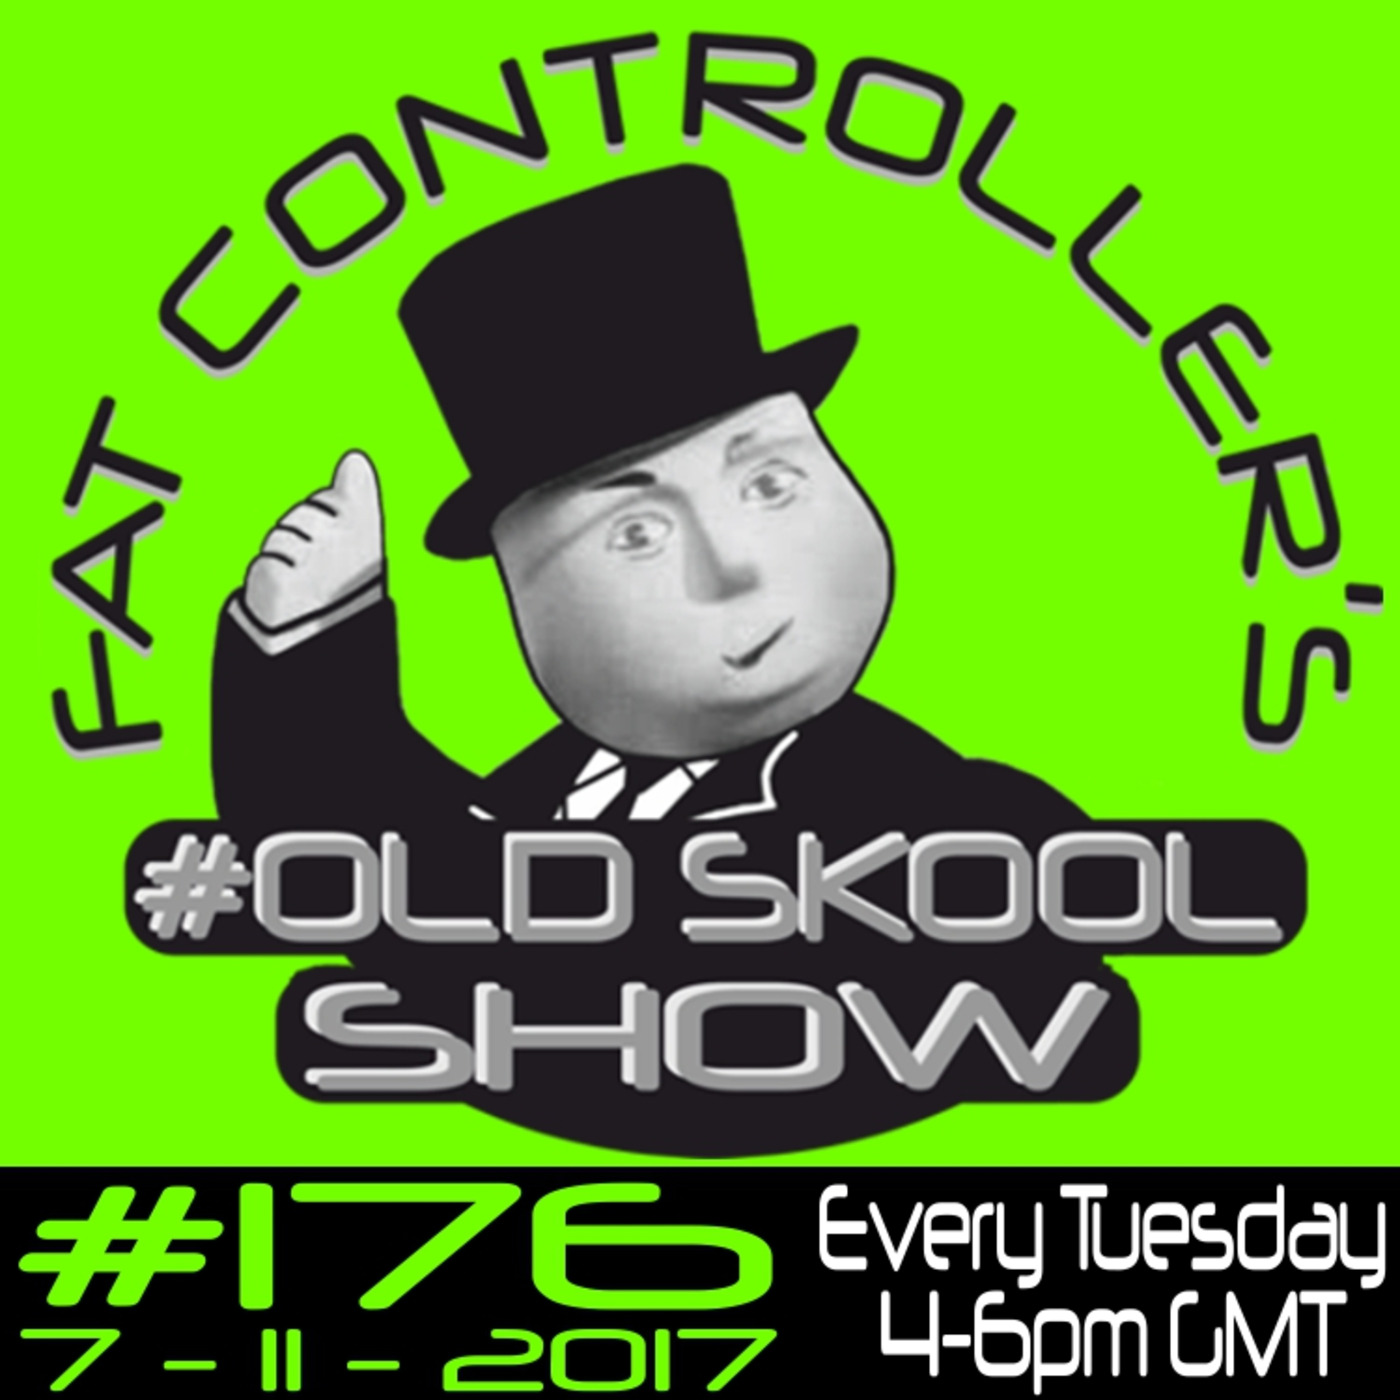 OldSkool Show #176 with DJ Fat Controller 7th November 2017